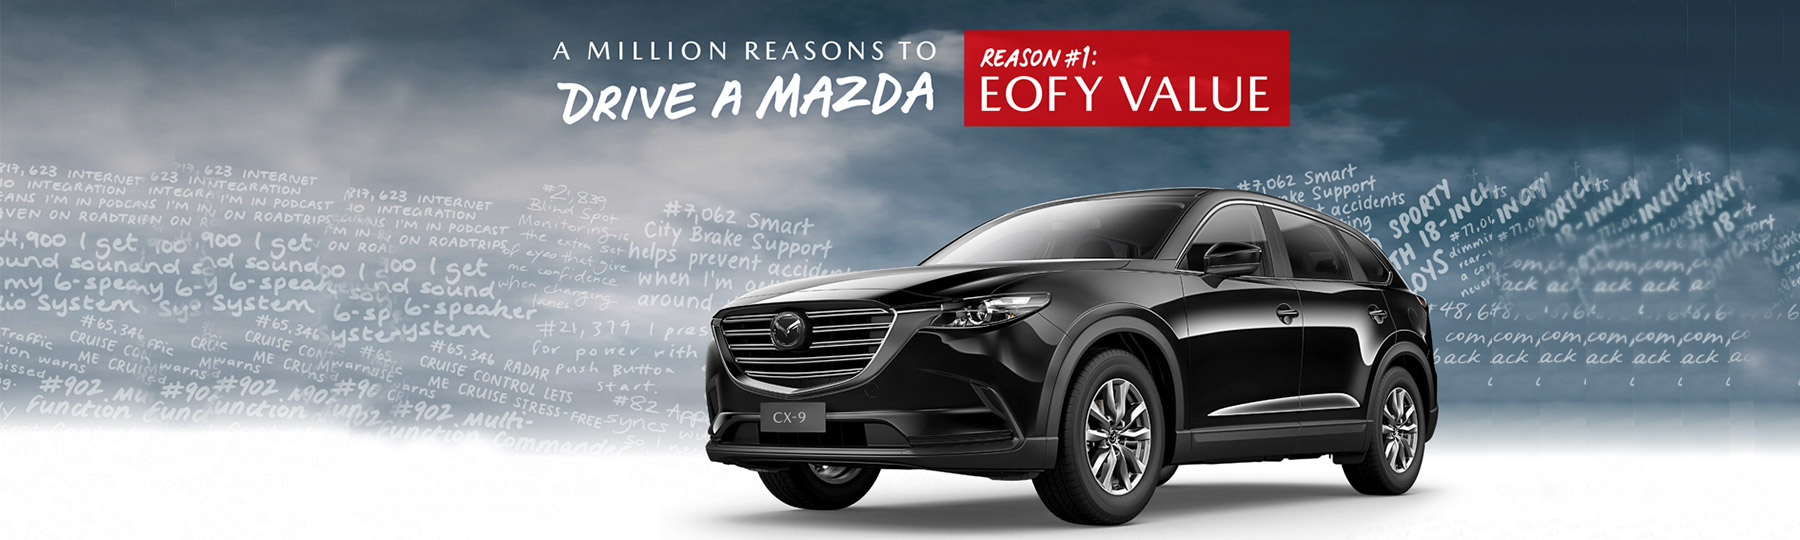 Mazda Offers